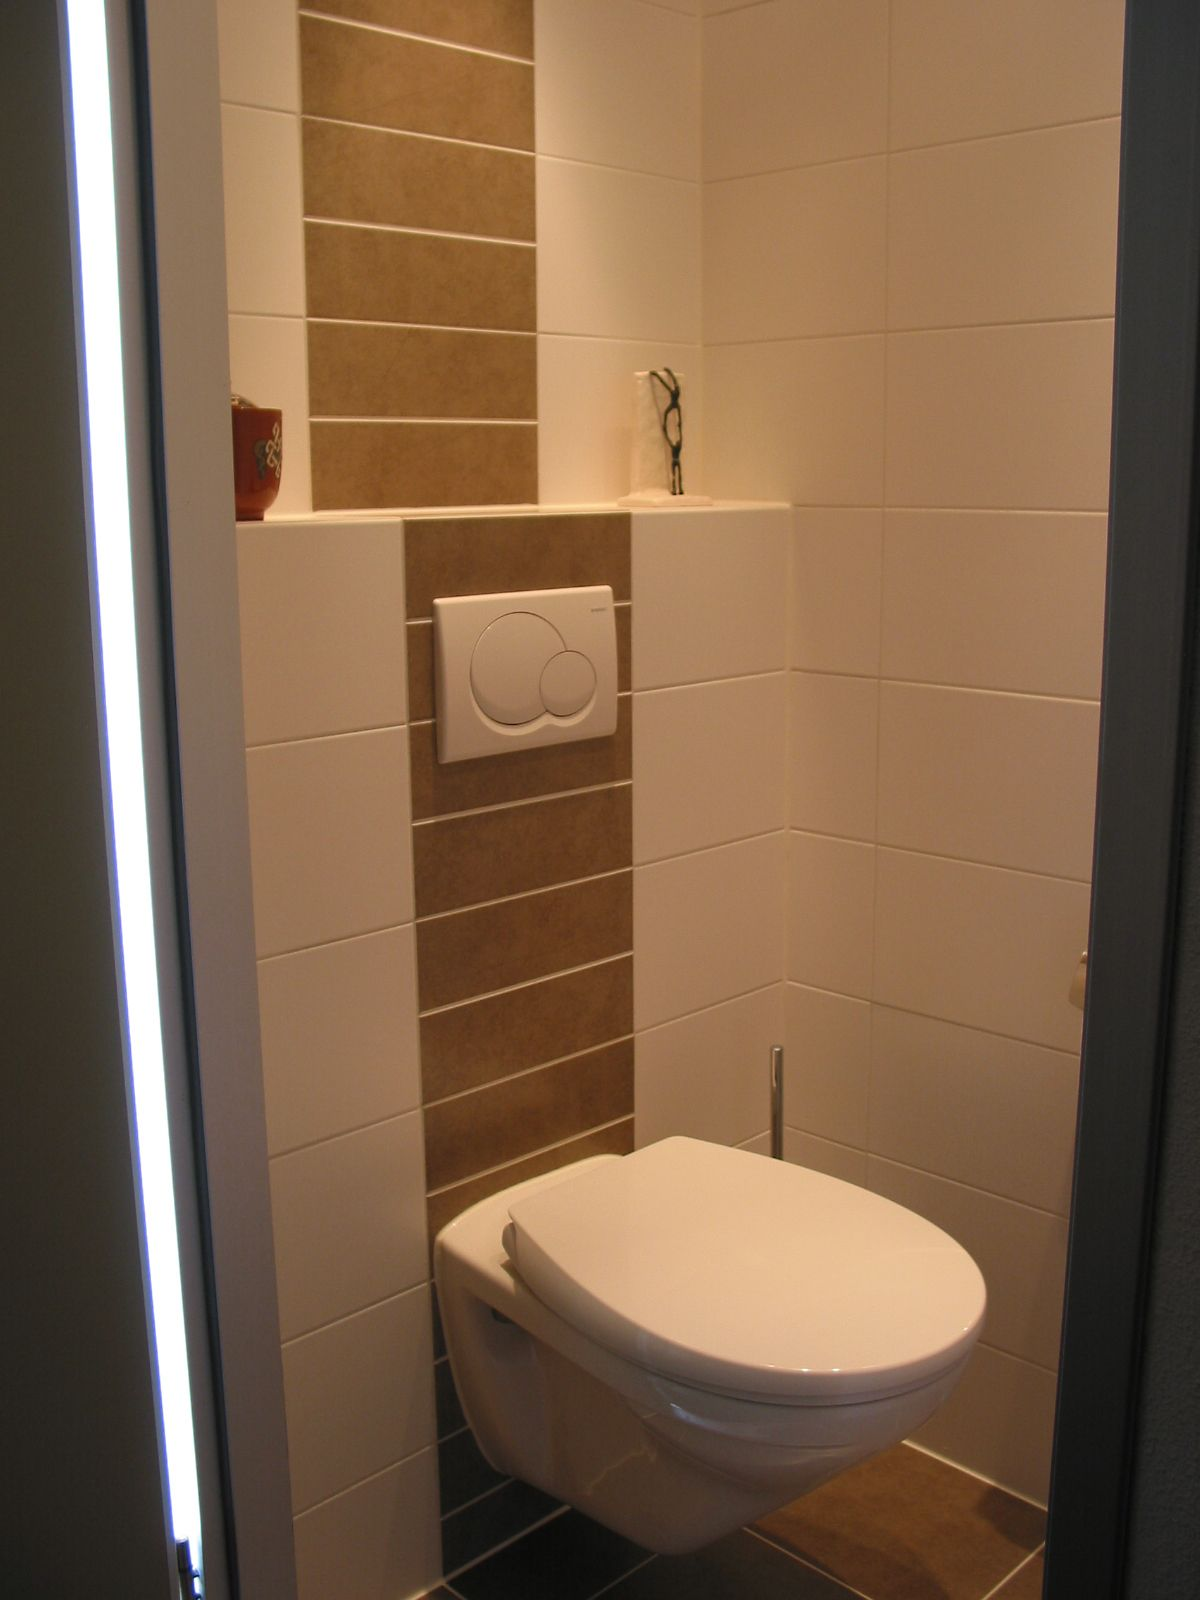 1000+ images about Huis inrichting - toilet/badkamer on Pinterest ...